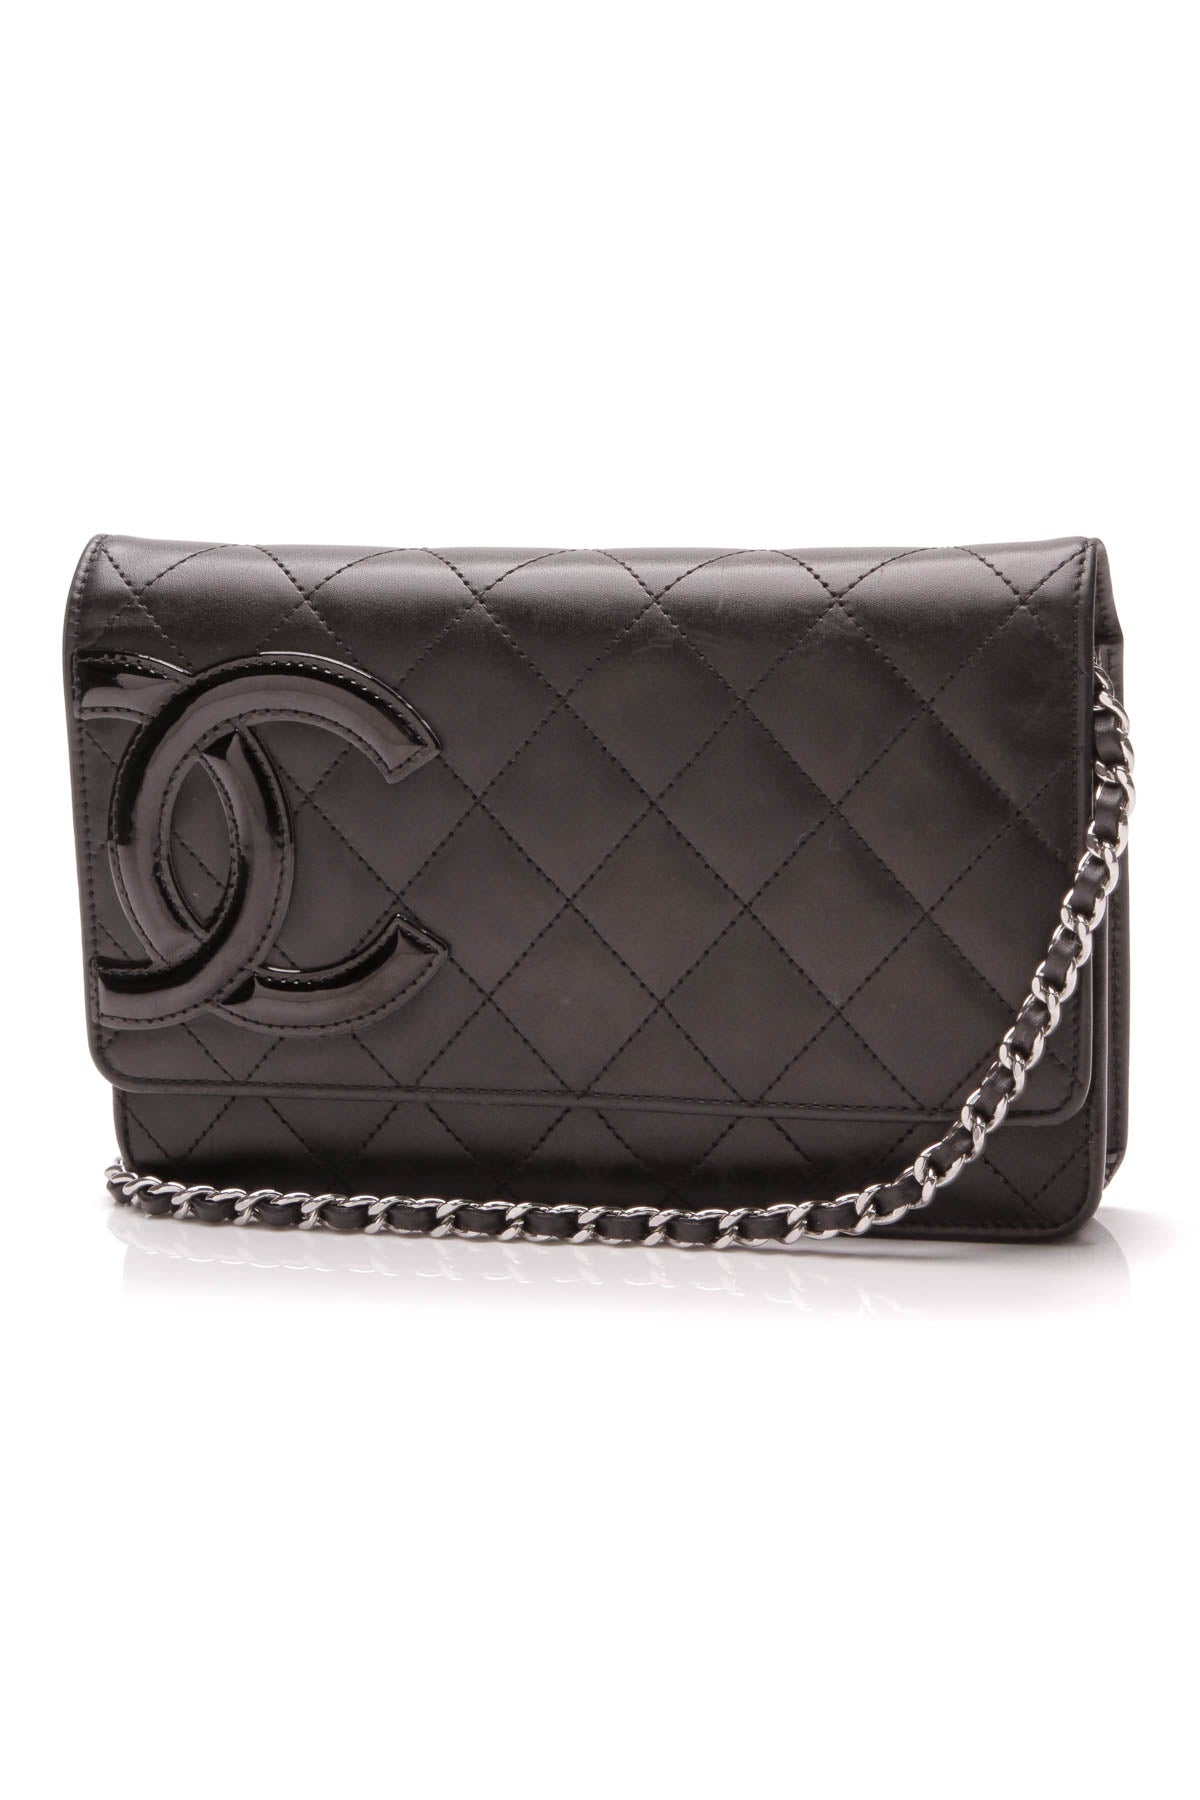 13b88059bdbf09 Shop Chanel Bag, Wallets and Accessories - Couture USA